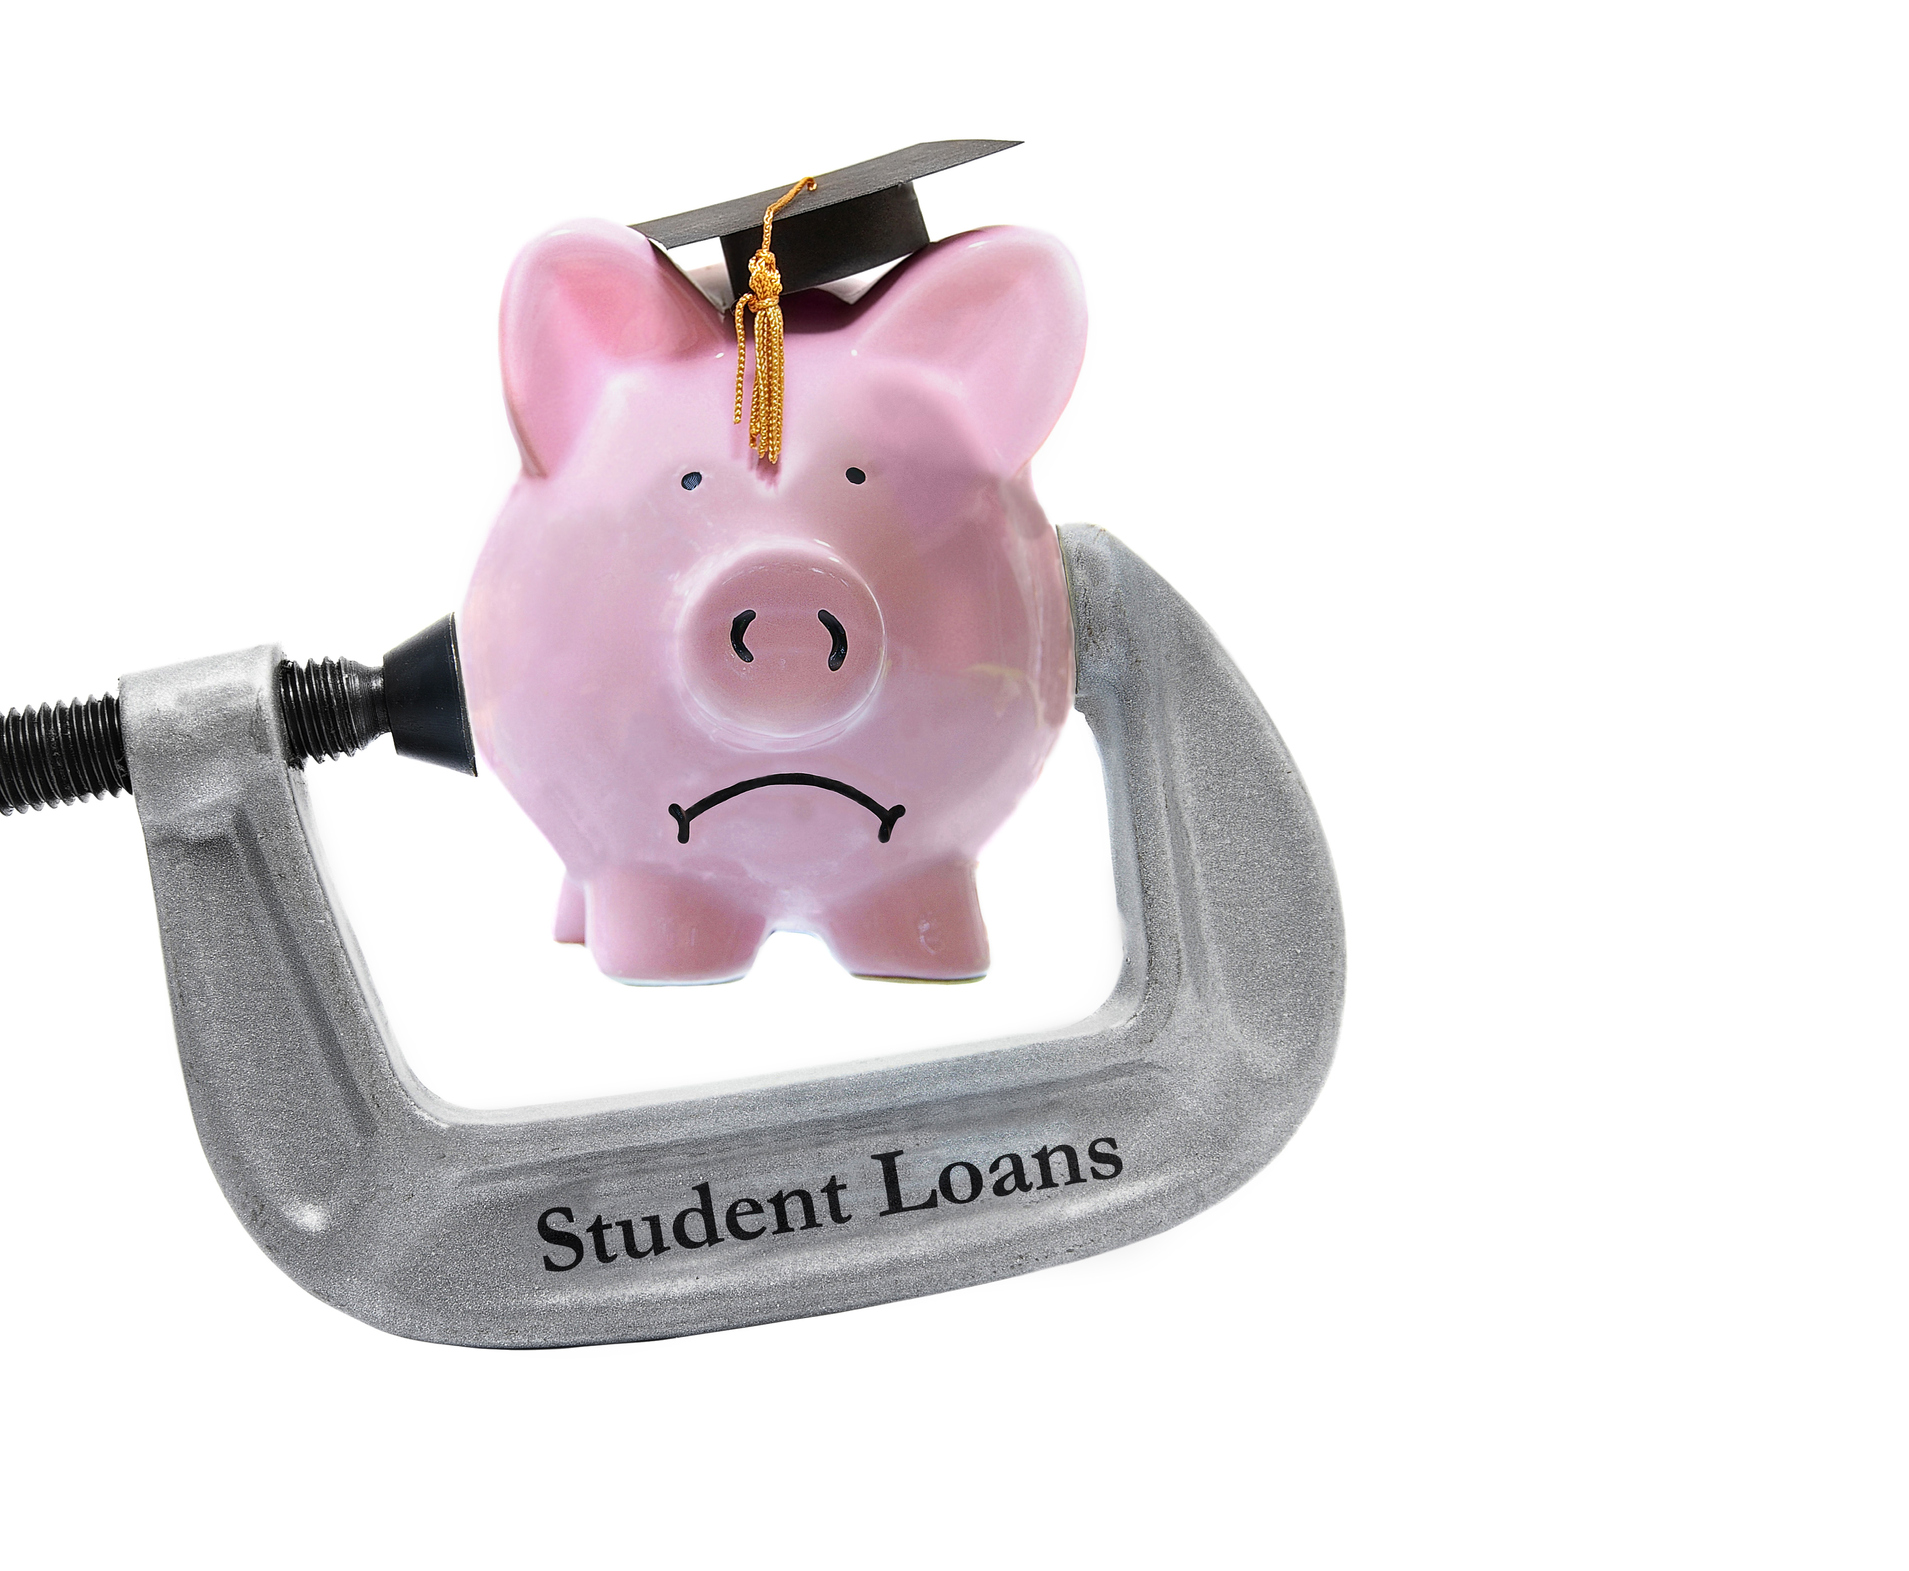 "A piggy bank wearing a graduation cap being squeezed by a vise labelled ""Student Loans""."